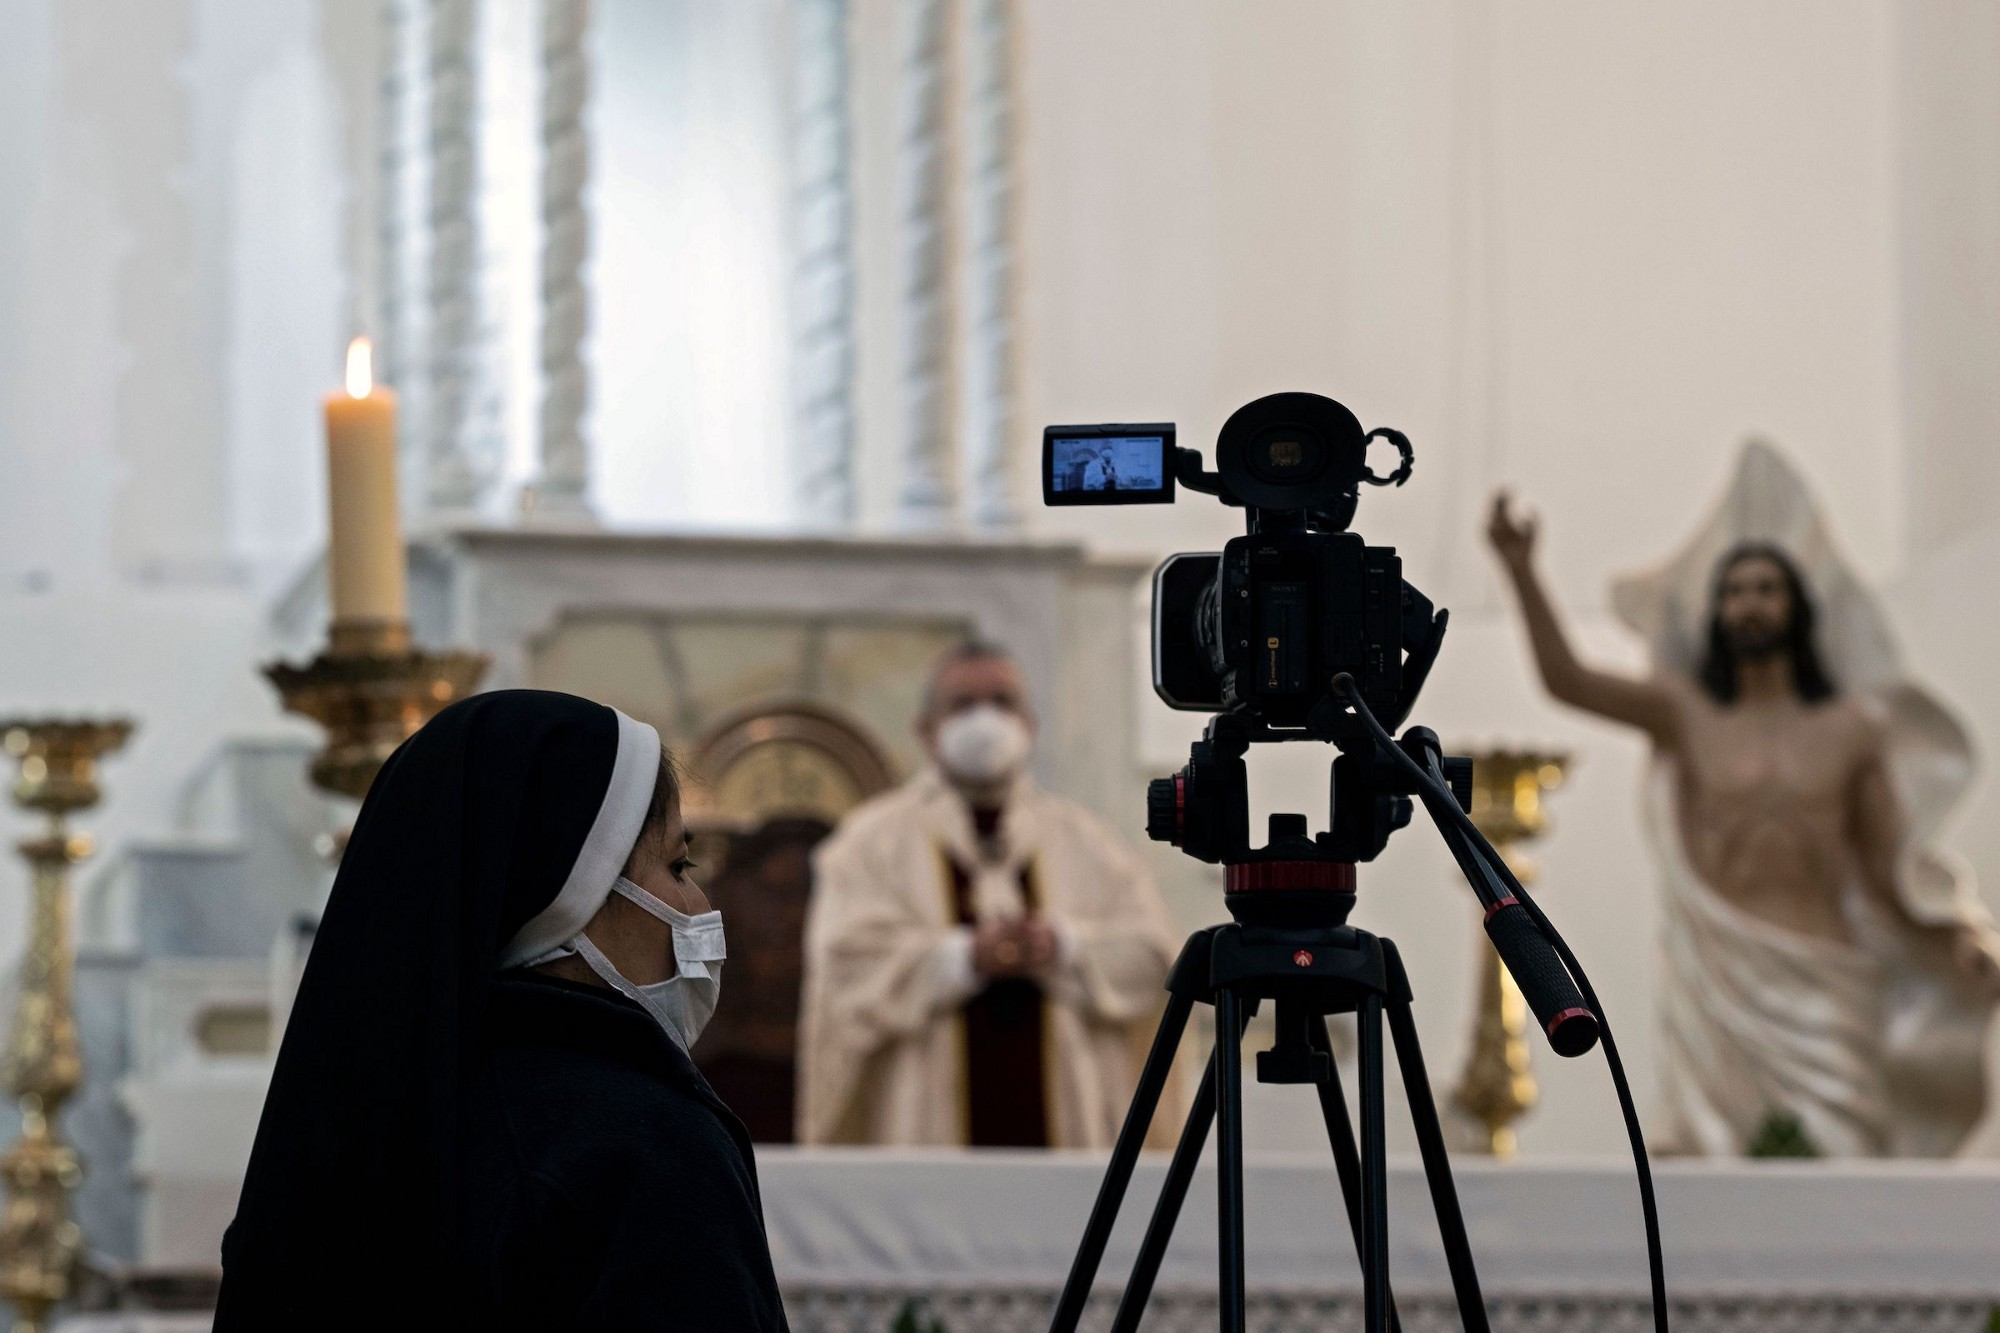 A nun with a video camera on a tripod recording a priest holding the Eucharist at an altar next to a statue of Jesus.